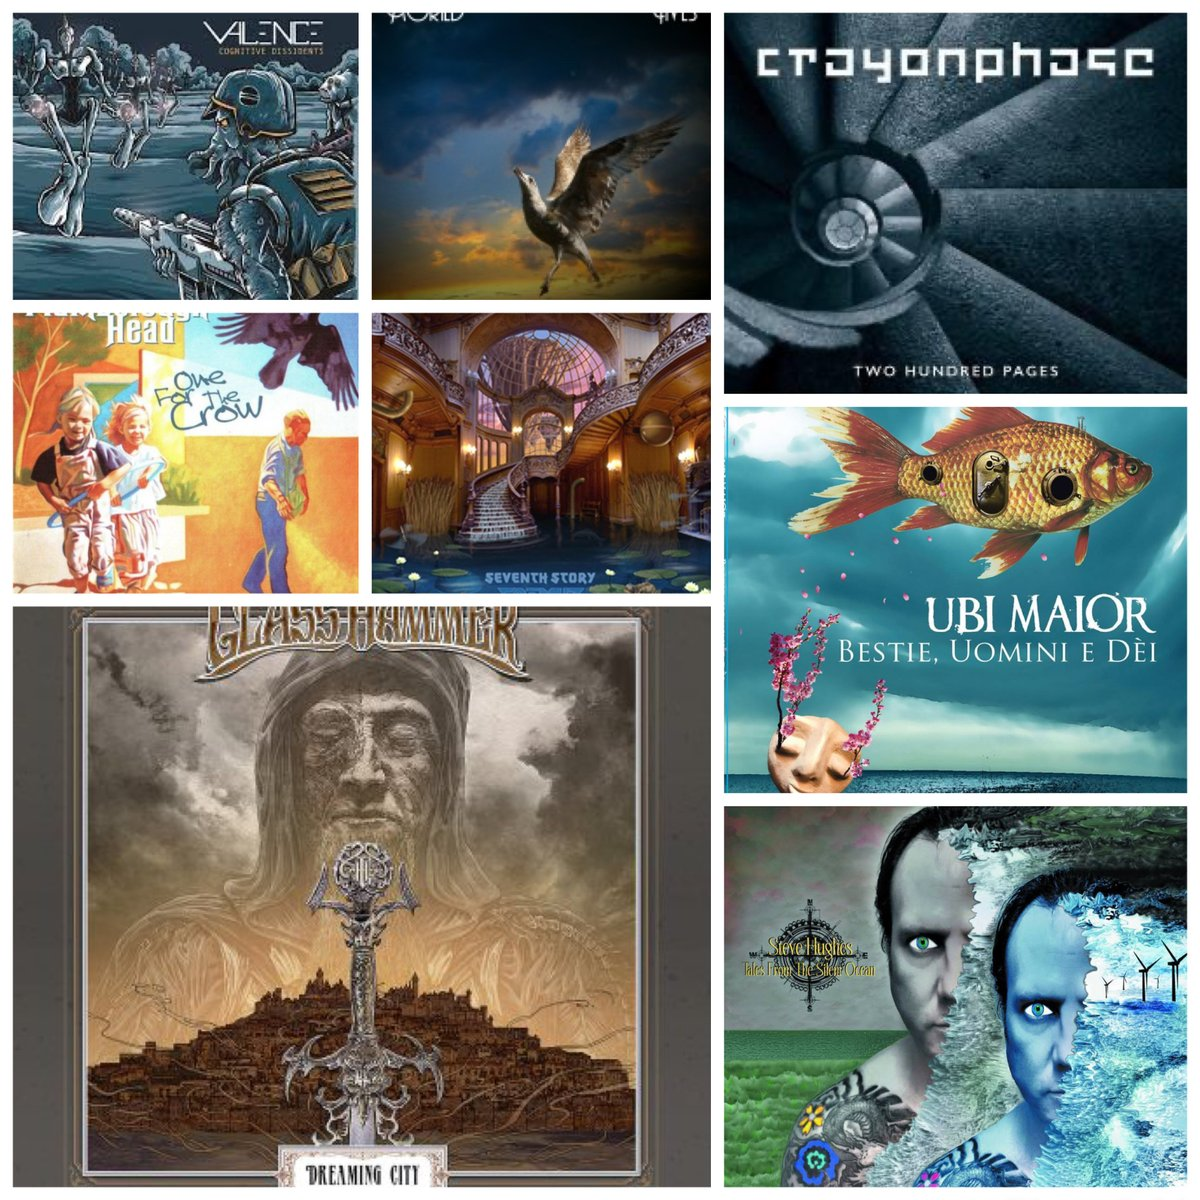 Epics for all Time No.228 from 28/05/2020 is also available to listen to anytime. Only the best long tracks old and new. Just click on the link below and enjoy!  #mixcloud #mixcloudcharts #progressiverock @Rock_Progresivo #progrock #indierock #epic   https://www.mixcloud.com/rush53/epics-for-all-time-no228-from-28-05-2020/…pic.twitter.com/r3SyUKXp5J